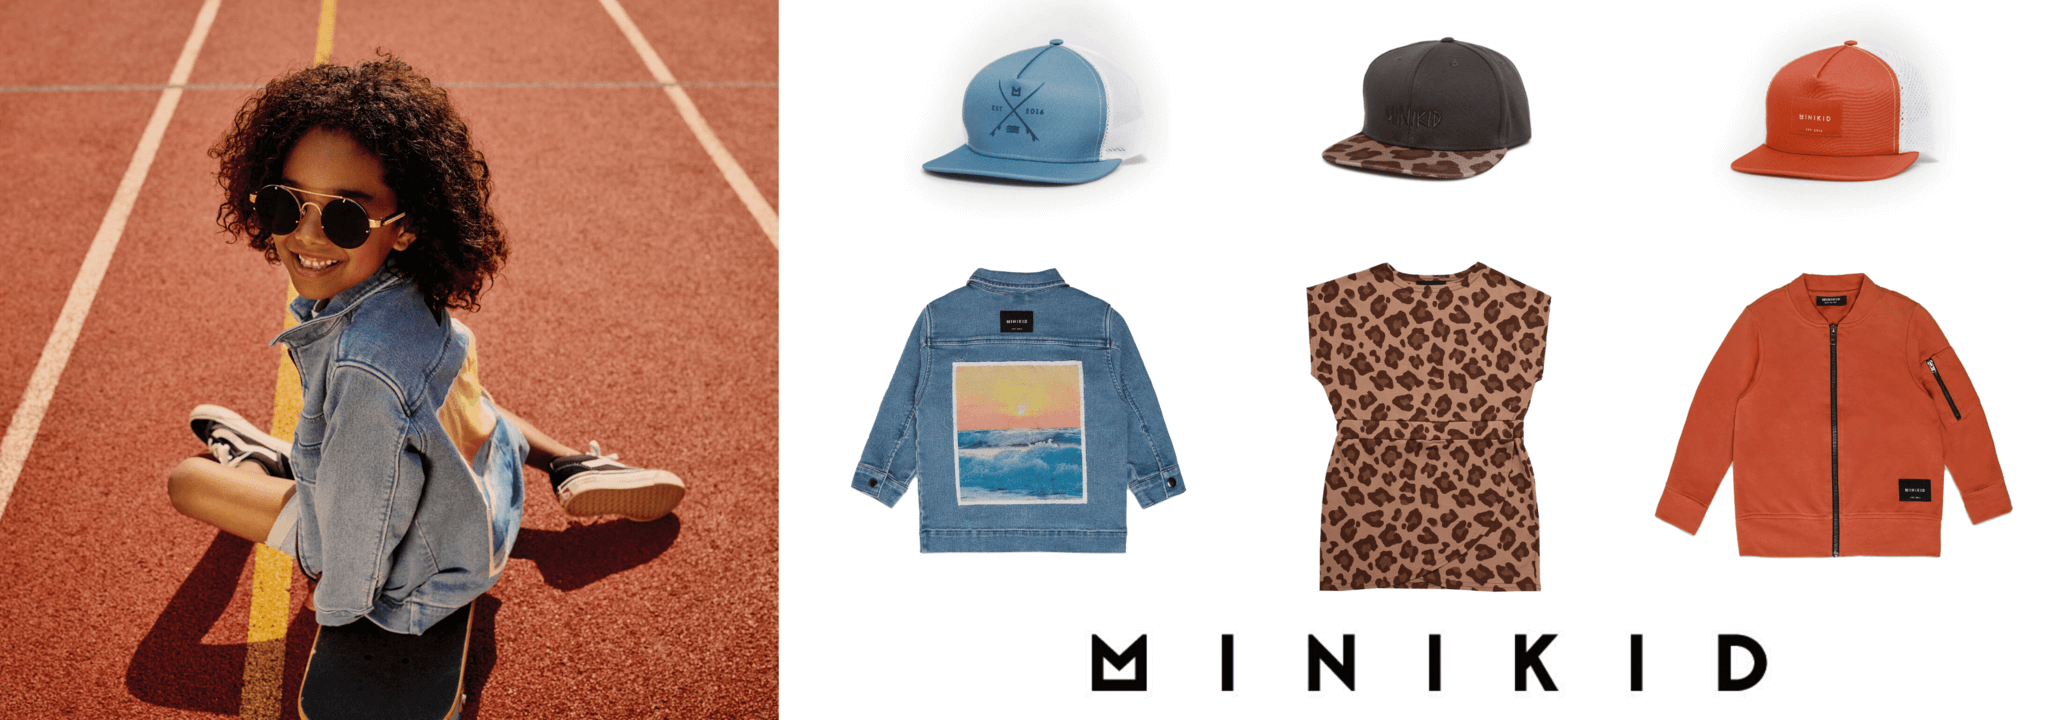 new collection minikid kids clothing ss20